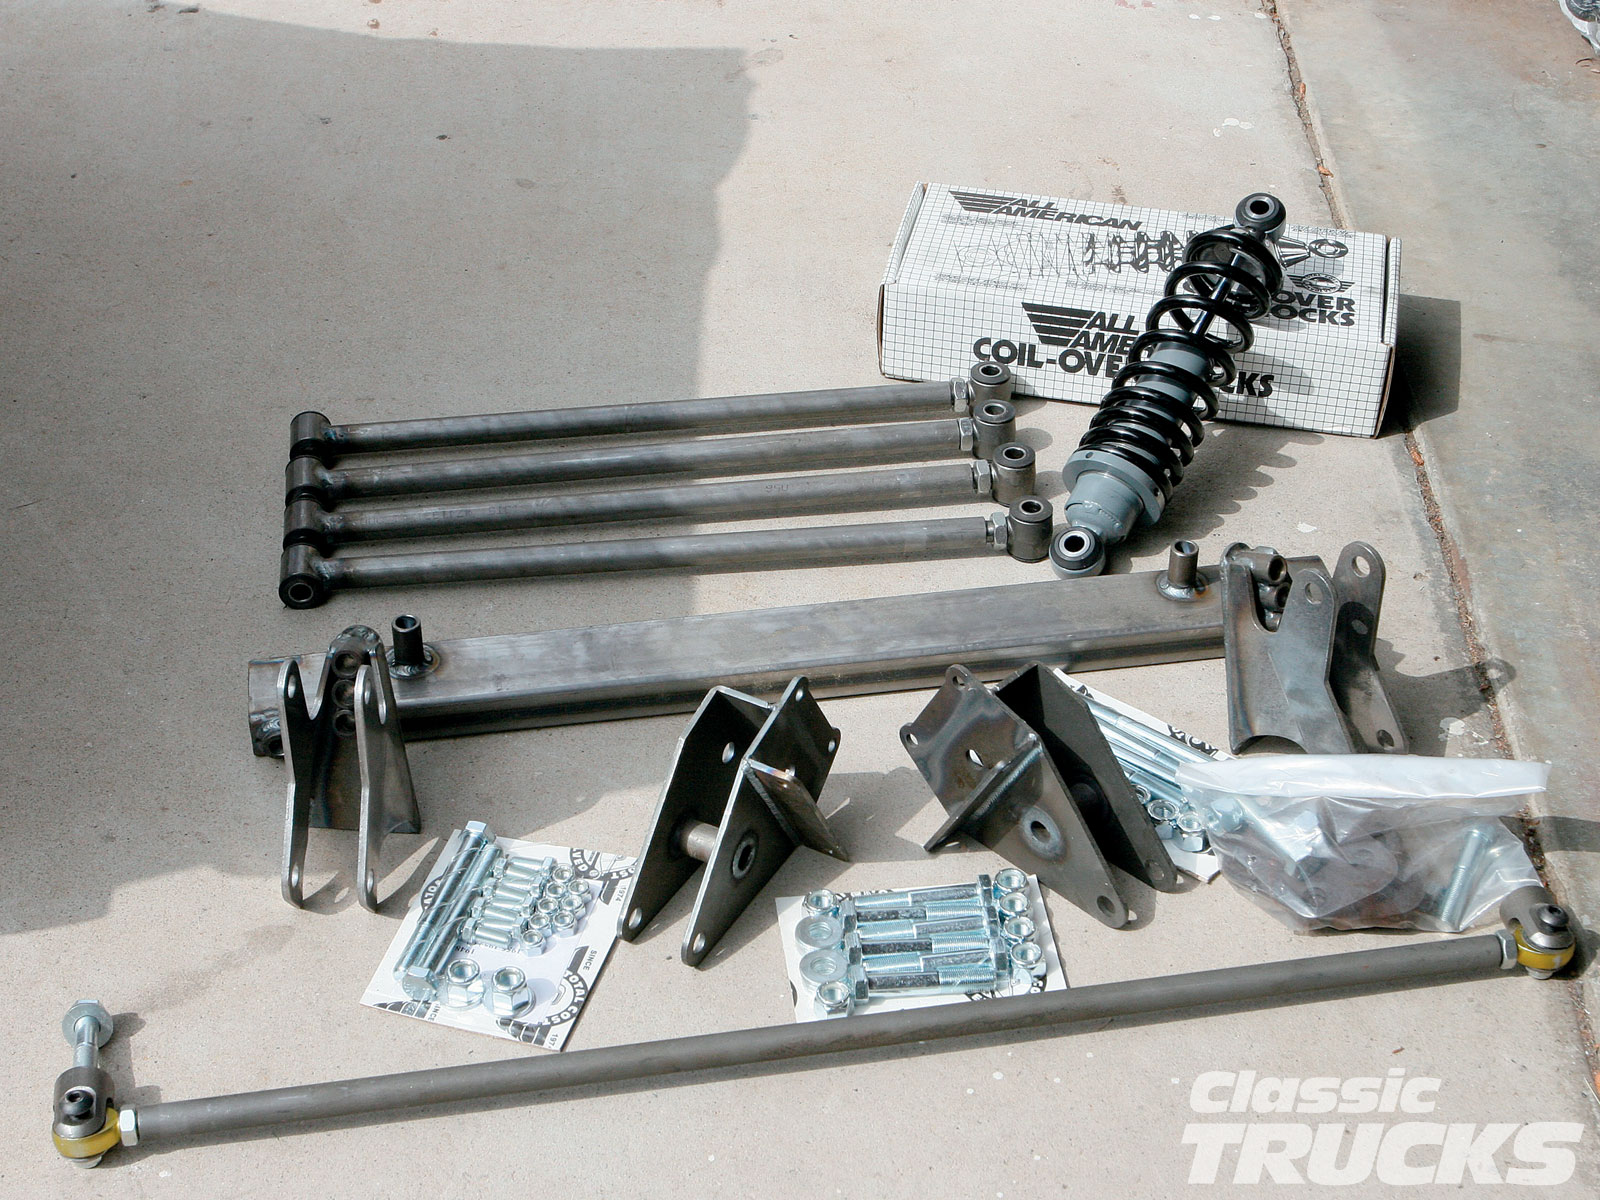 Suspension Bar Installing A Coilover/four-bar Rear Suspension System